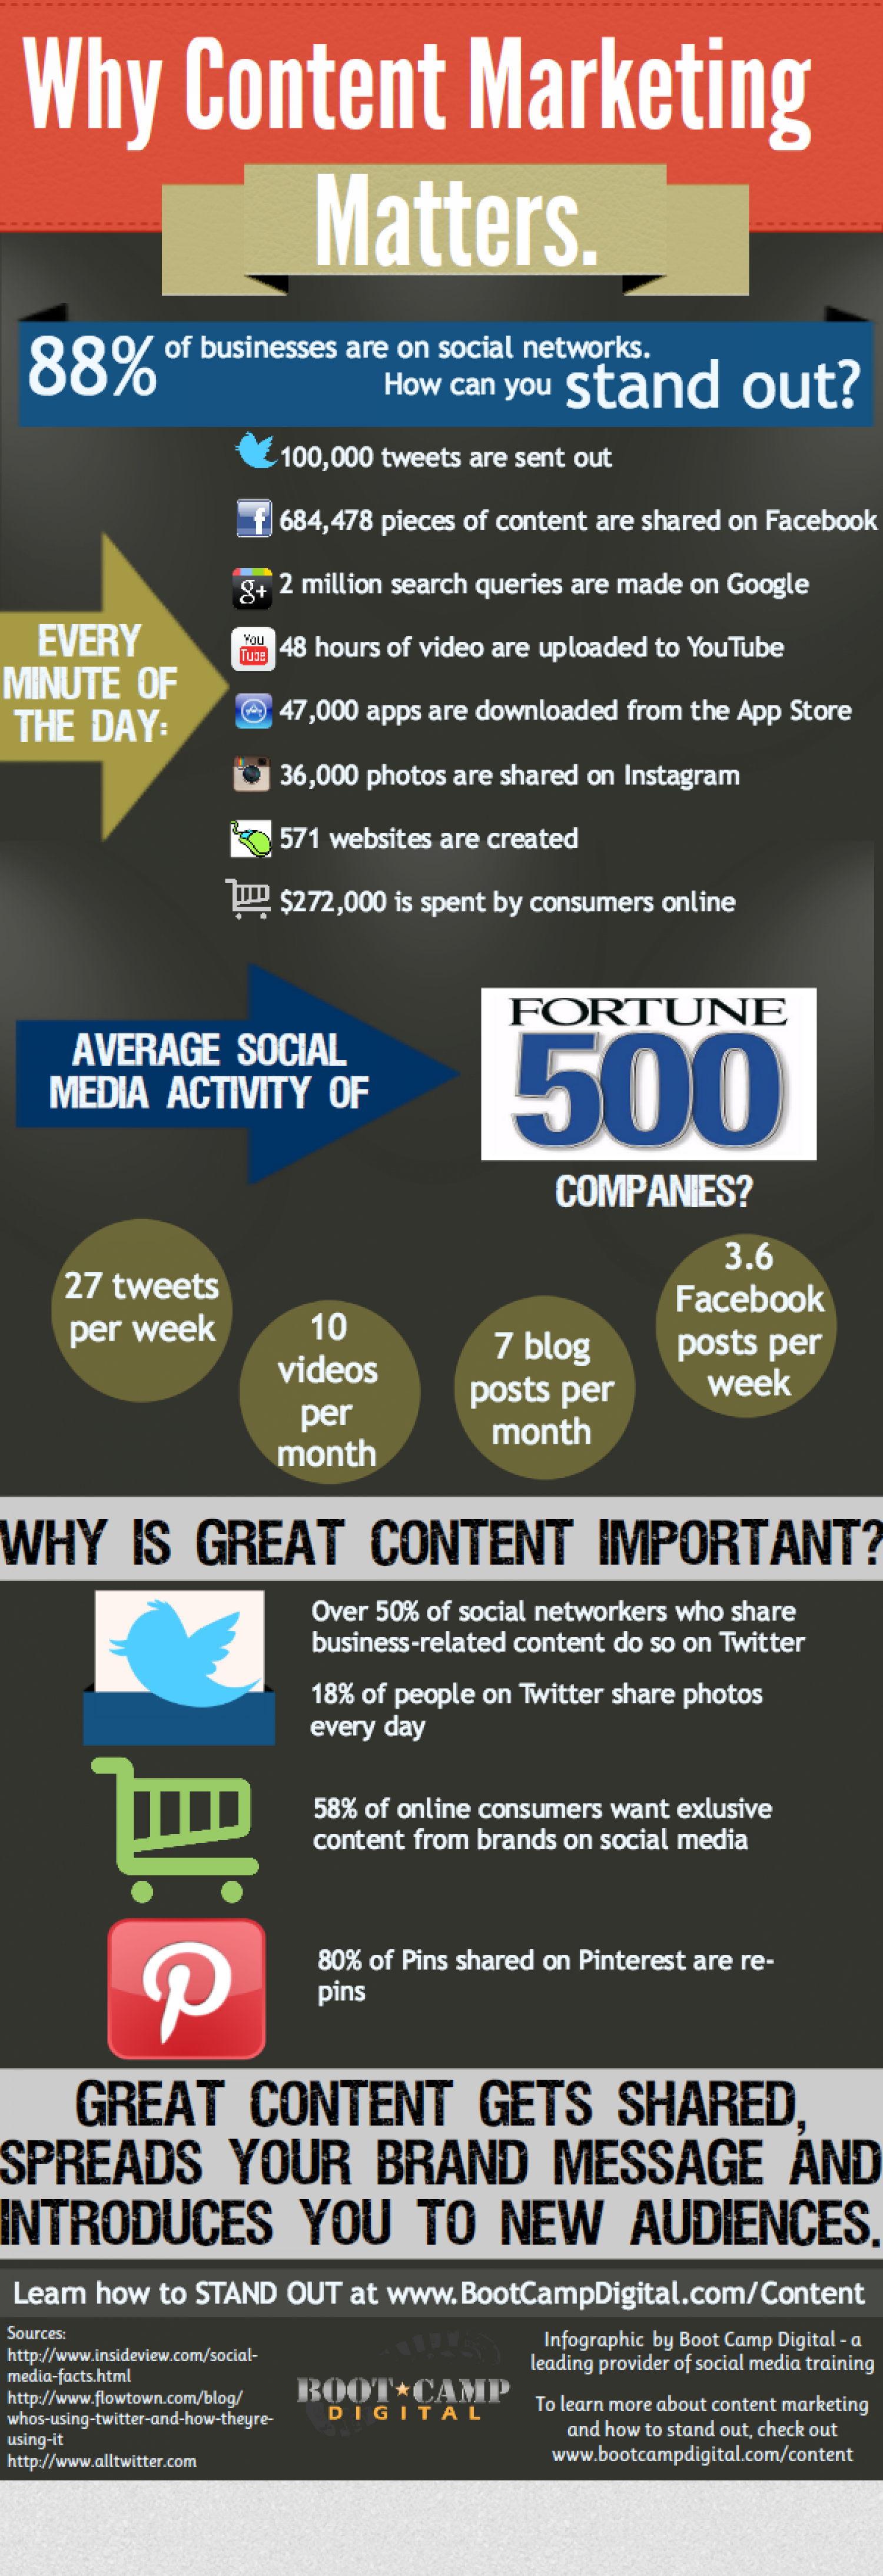 Why Content Marketing Matters Infographic